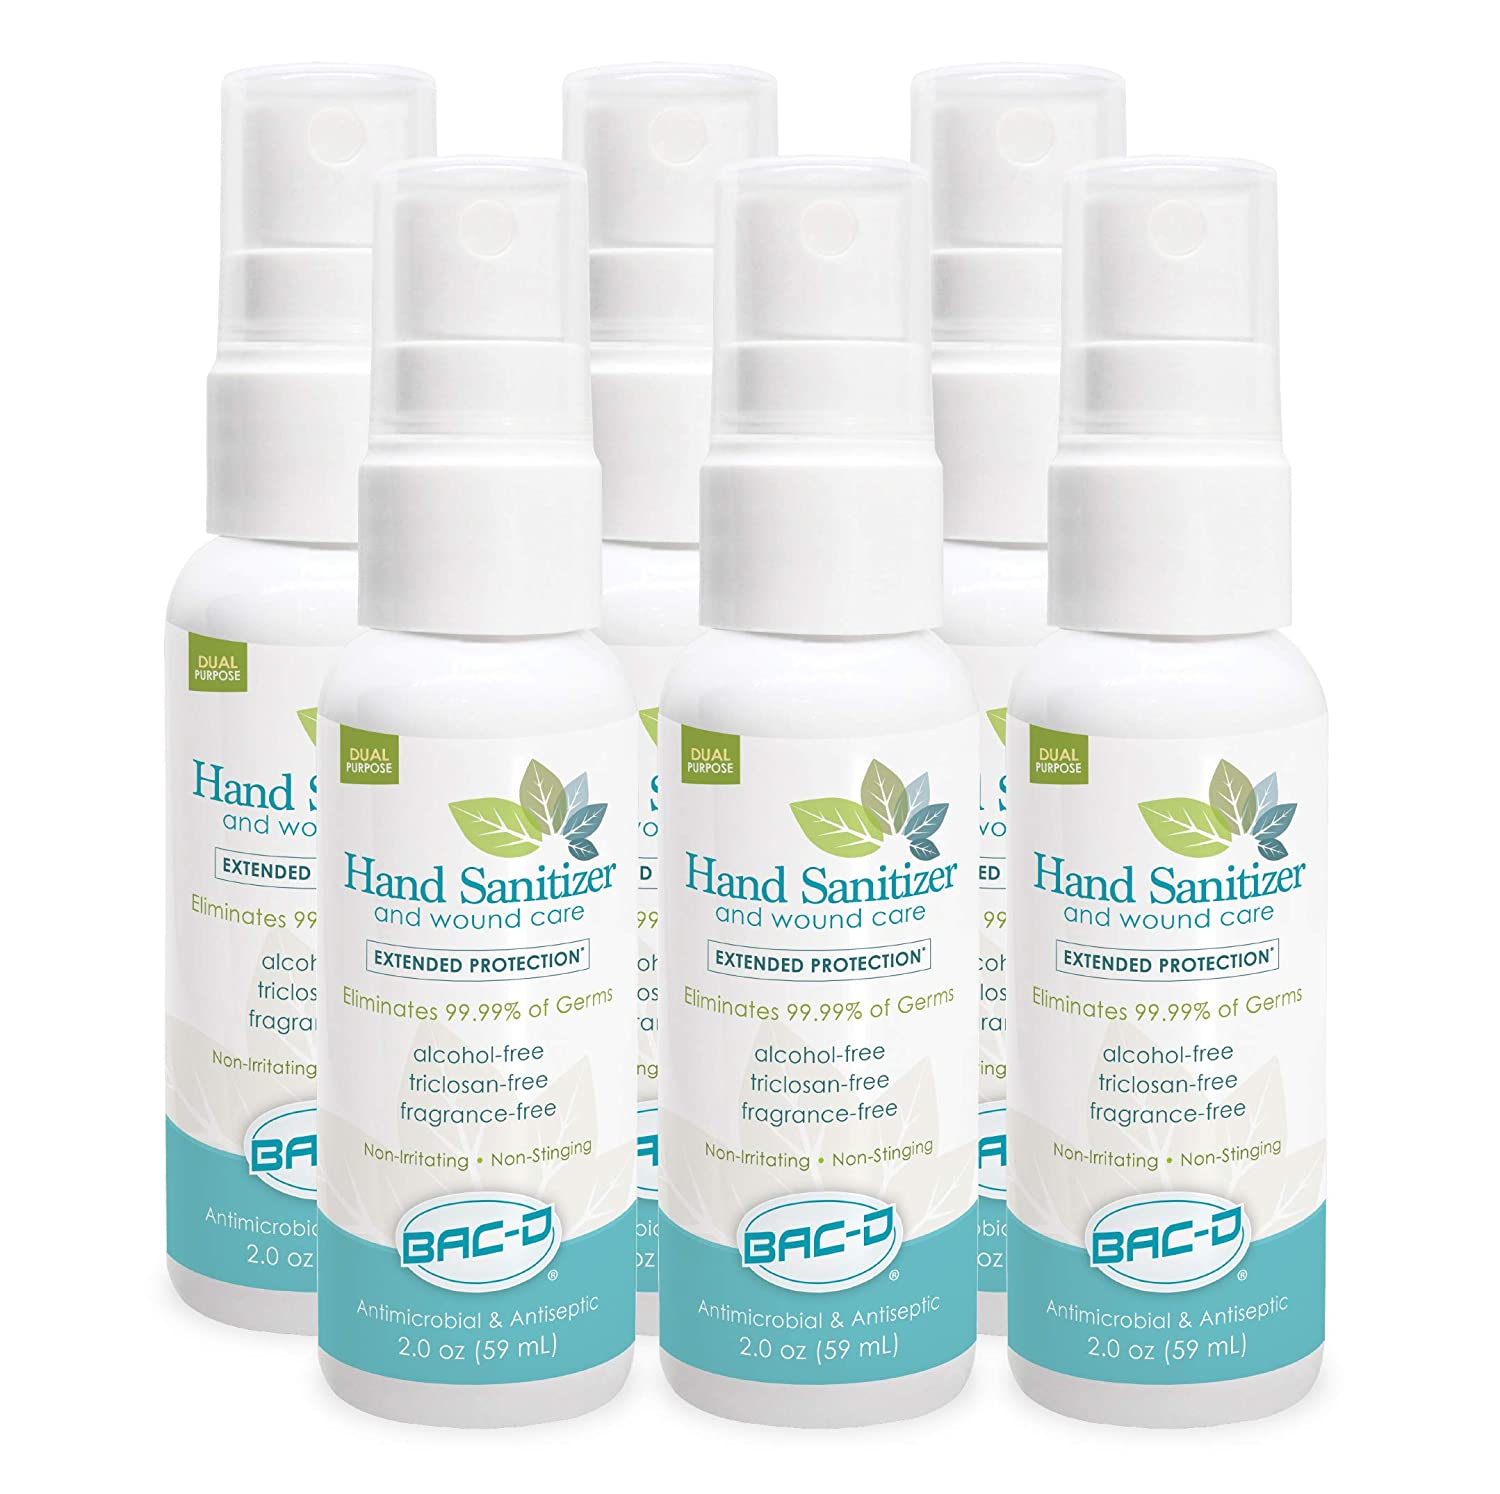 Hand Sanitizer Wound Care Outlet SALE - USA Made Fashionable Kills of 99.99% Germs